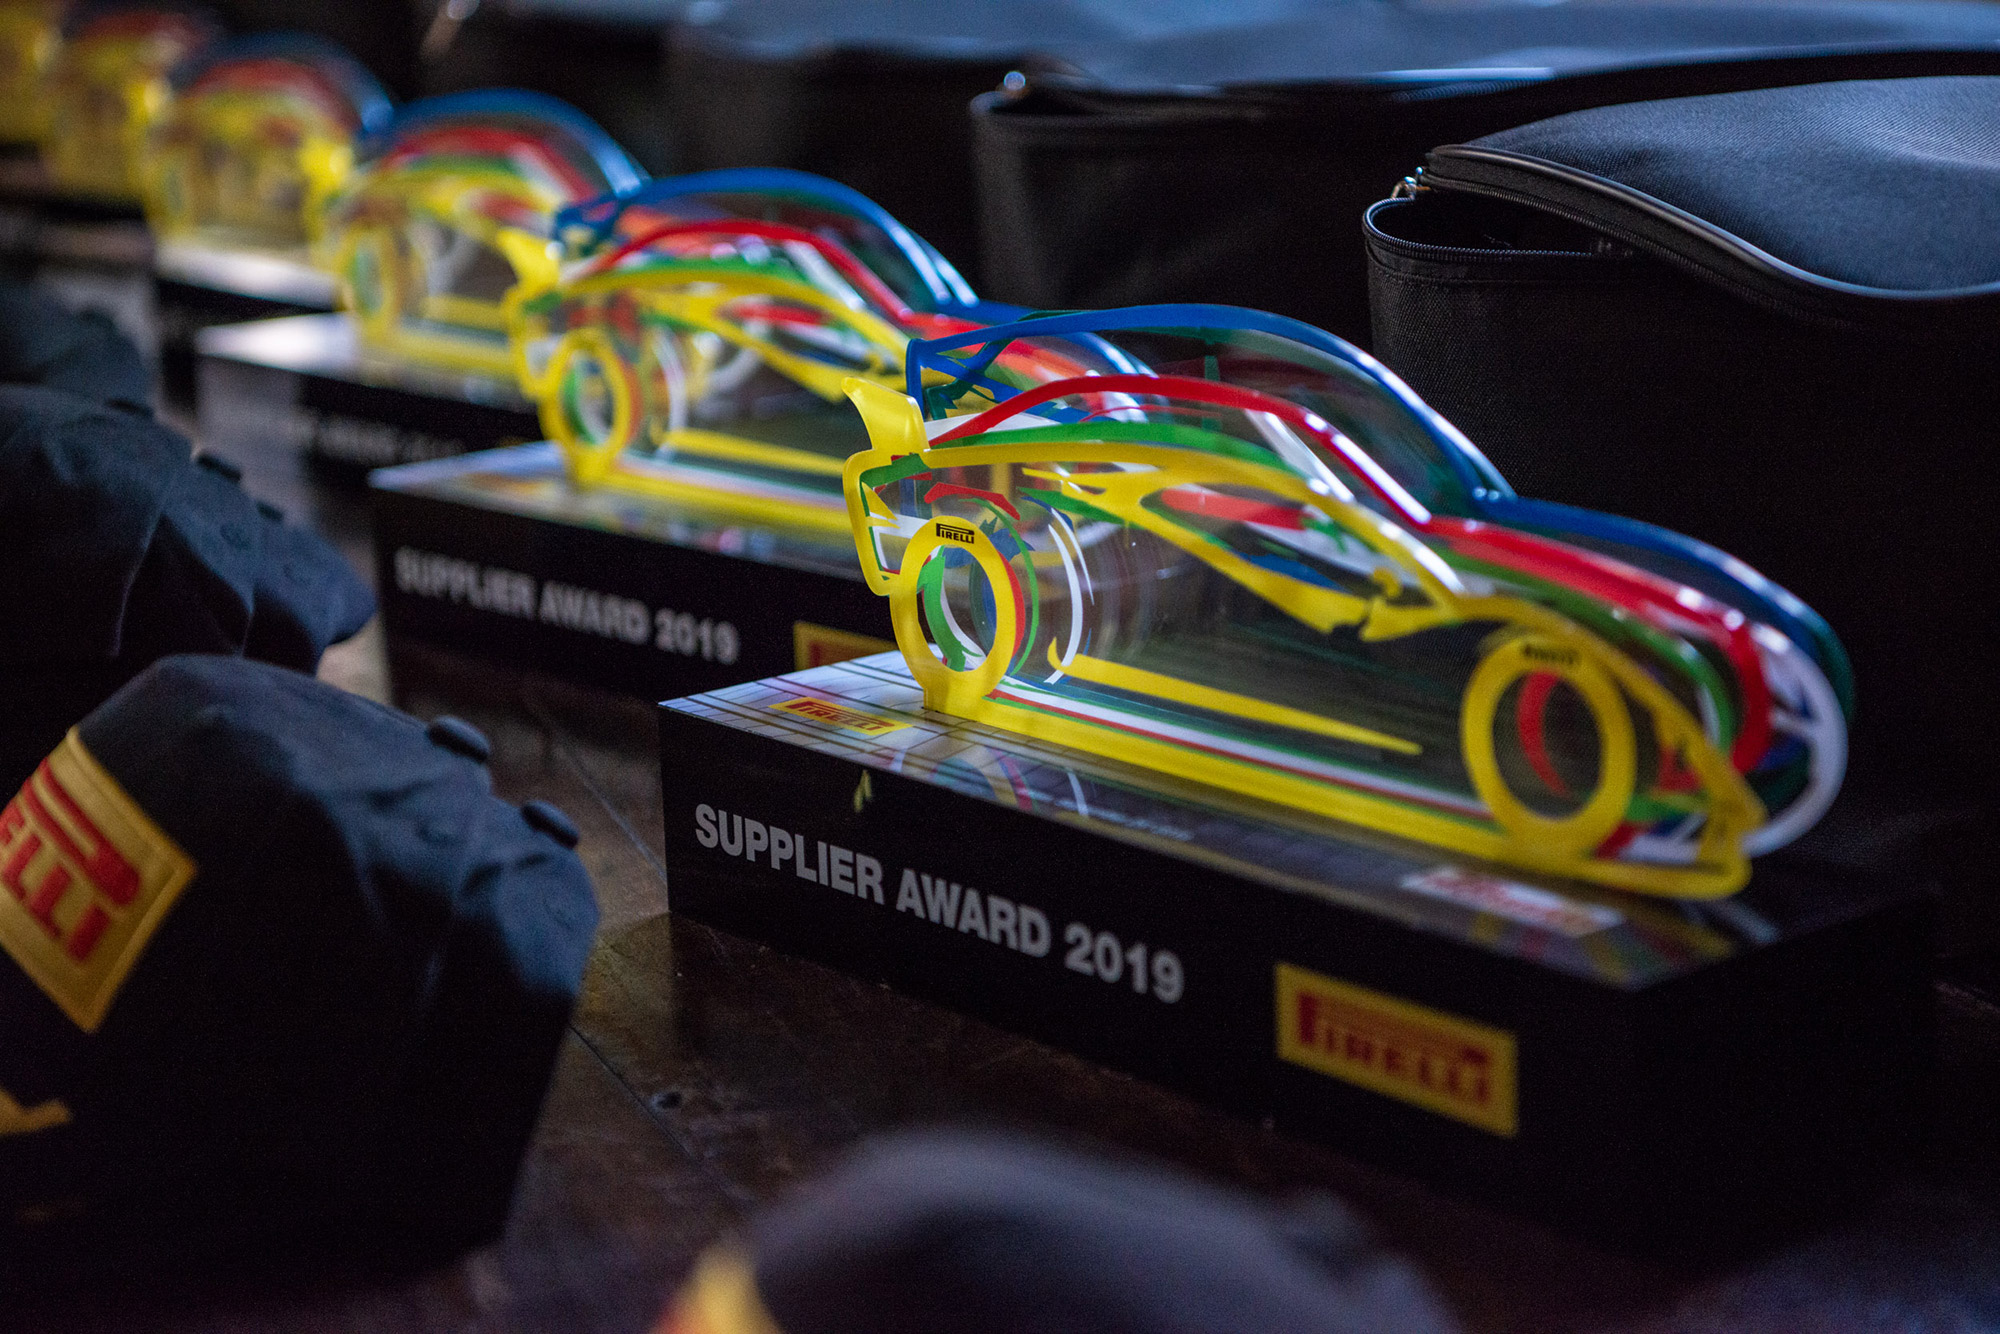 pirelli-supplier-award-2019.jpg